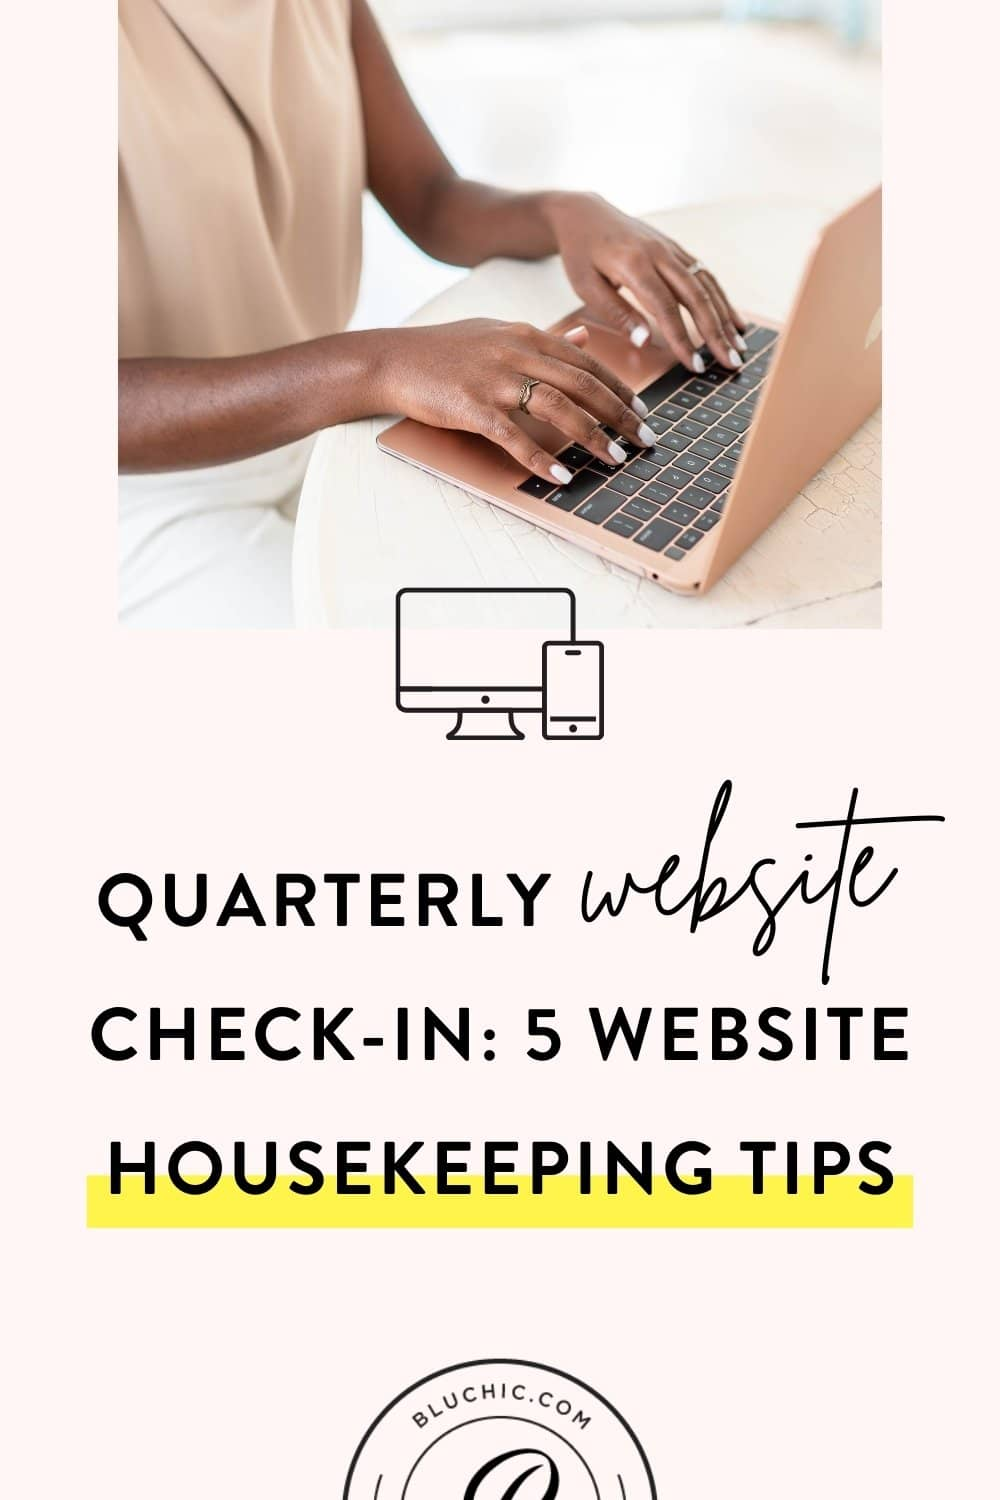 Quarterly Website Check-In: 5 Website Housekeeping Tips | If the quarter is coming to an end, it's time to check in on your website. Here's a quarterly website checklist to set your website up for success. #wordpress #websitetips